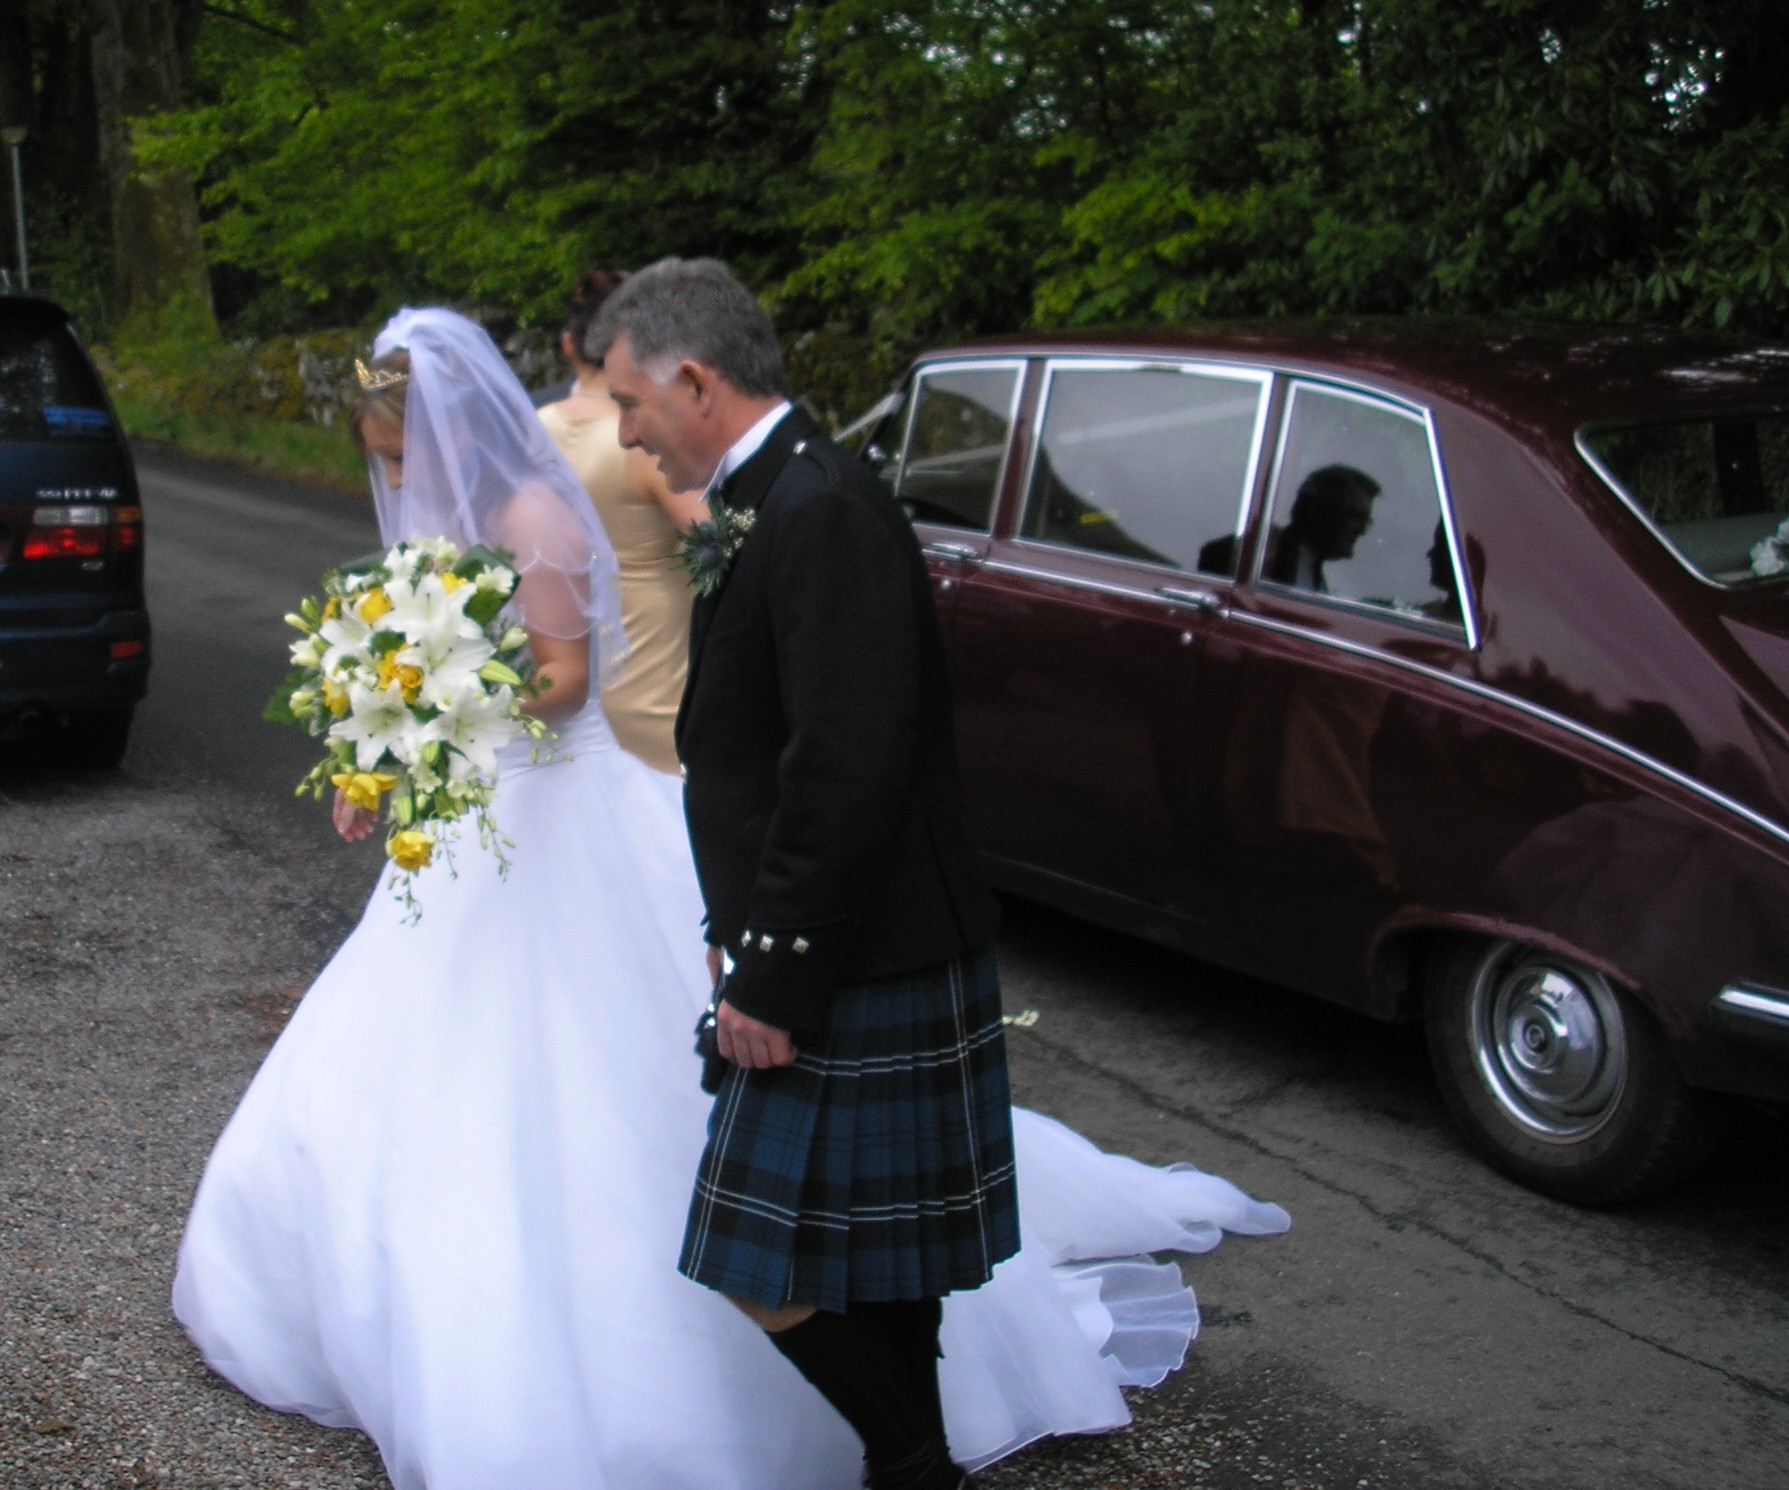 Lee Bremner & Phil Bain's Wedding